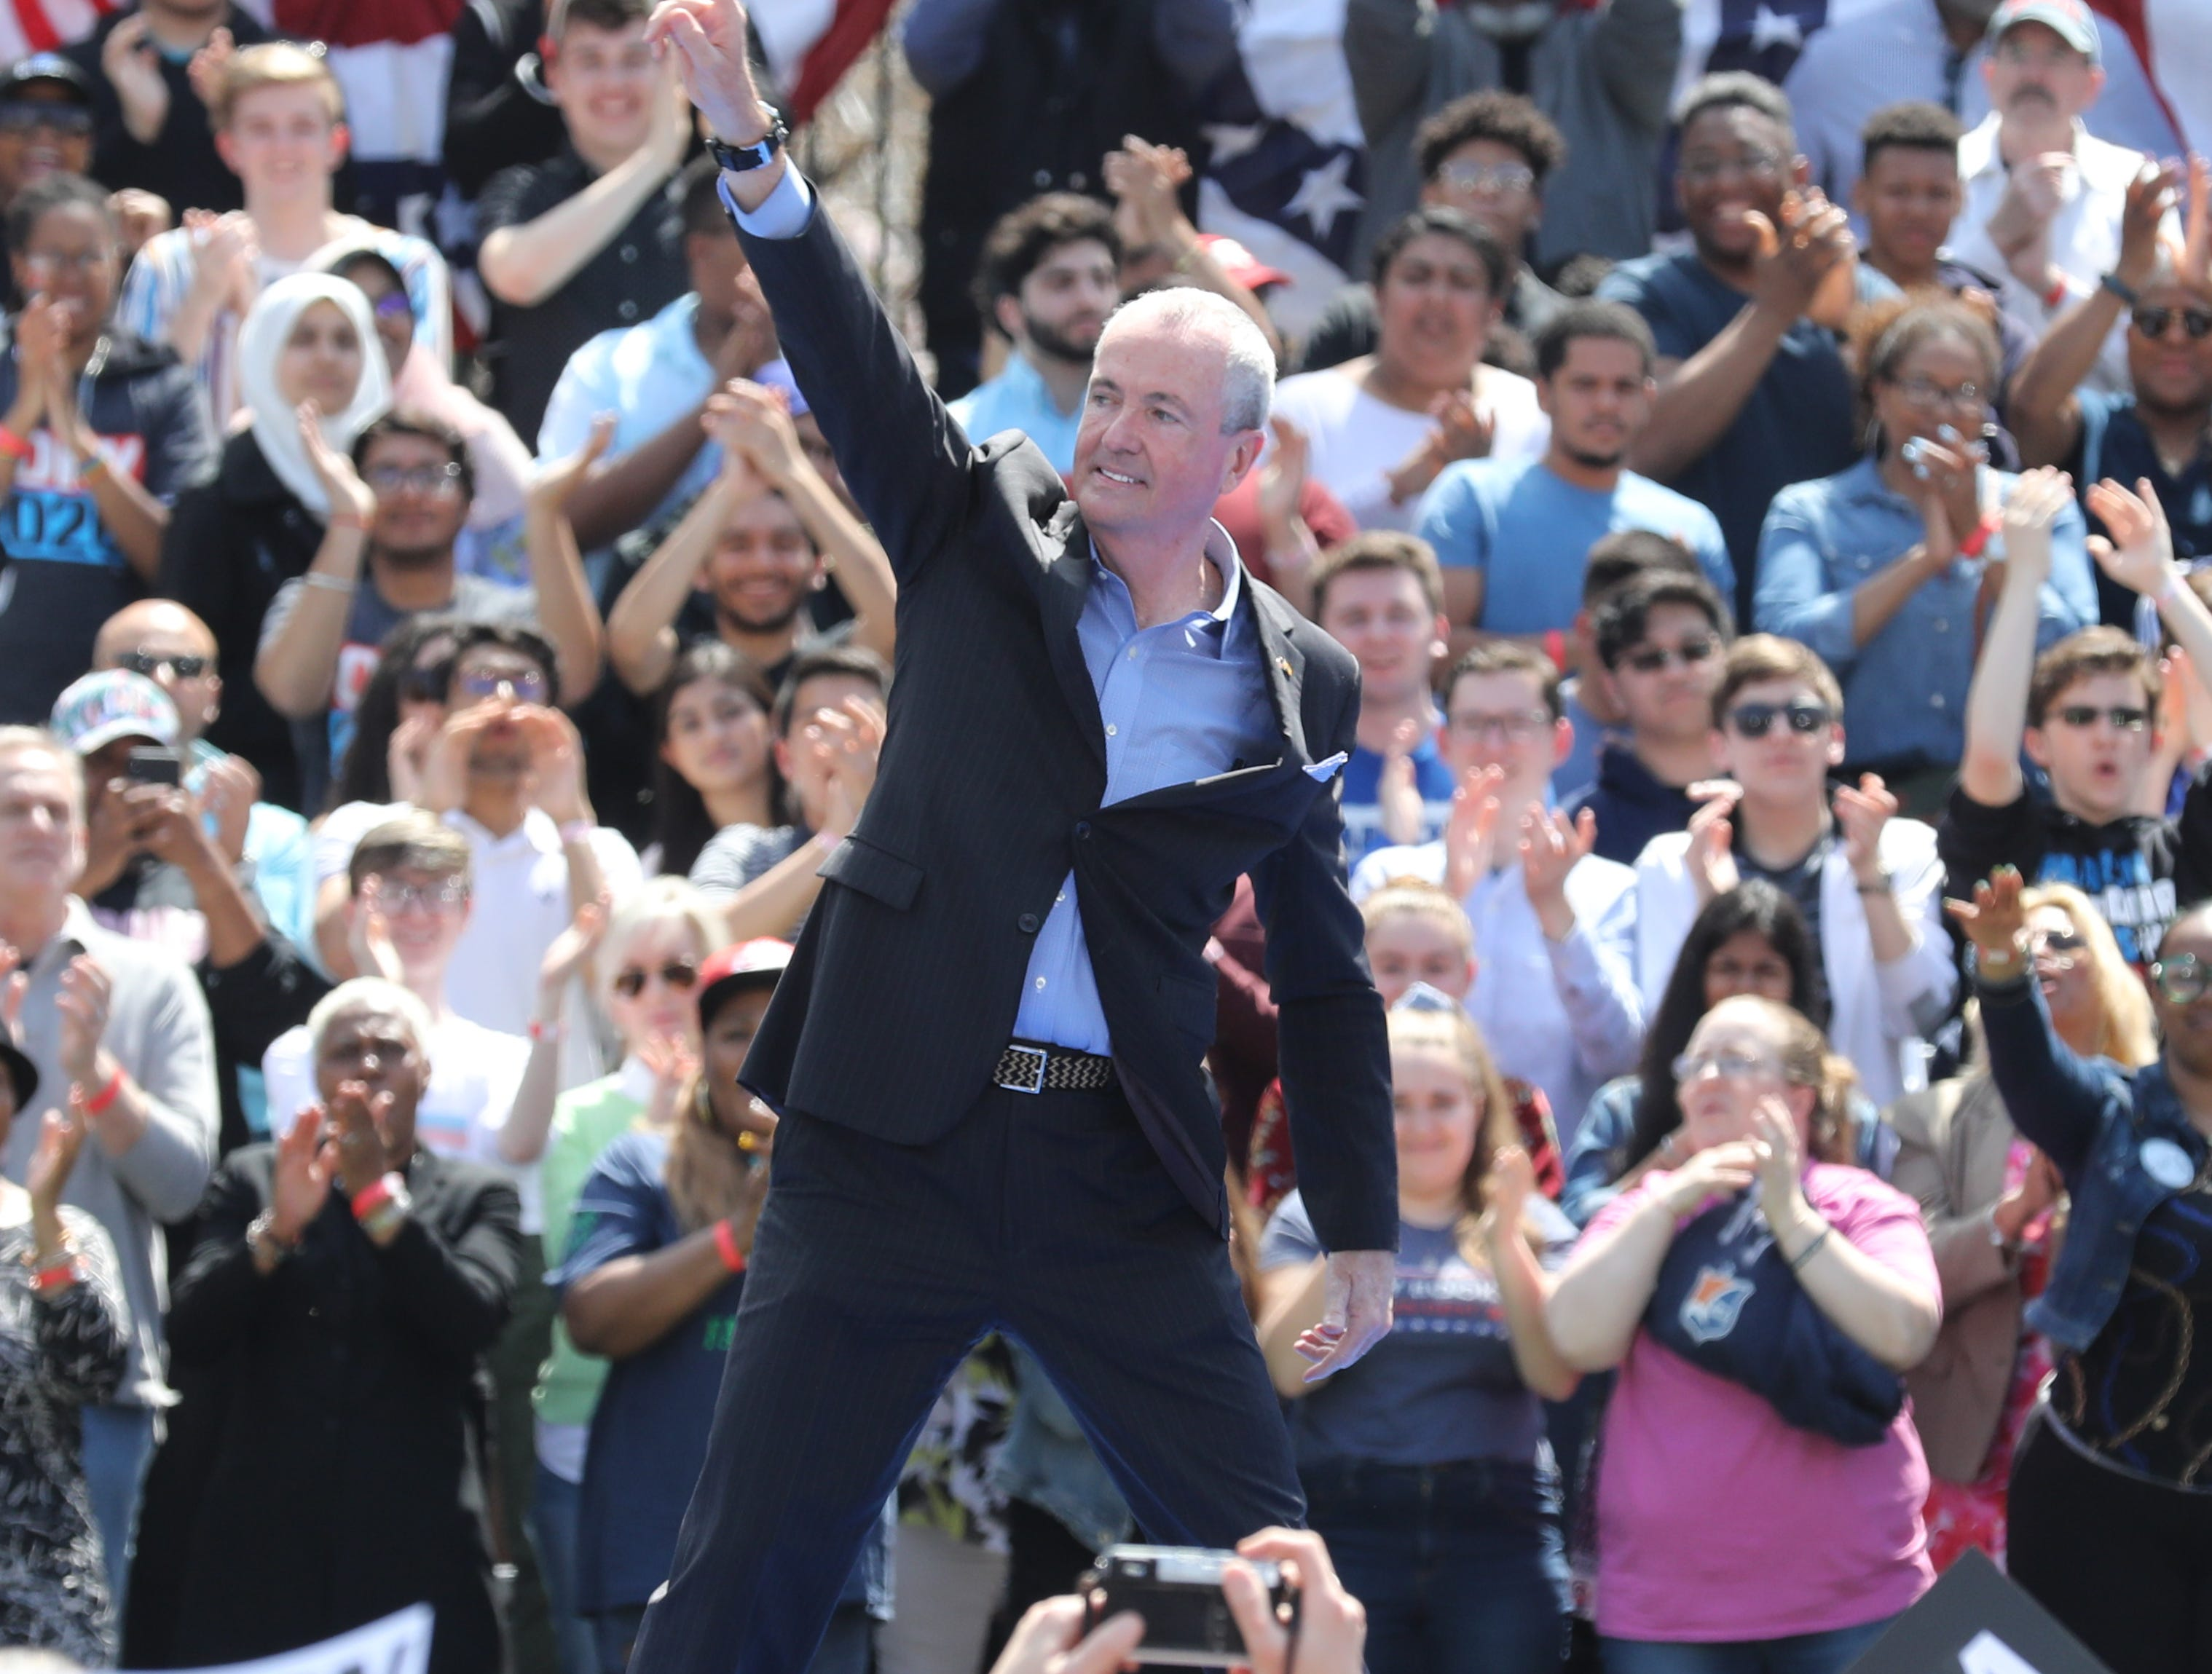 Governor Phil Murphy after he addressed supporters at a rally to kick off the Cory Booker campaign for president that was held at Military Park in Newark on April 13, 2019.